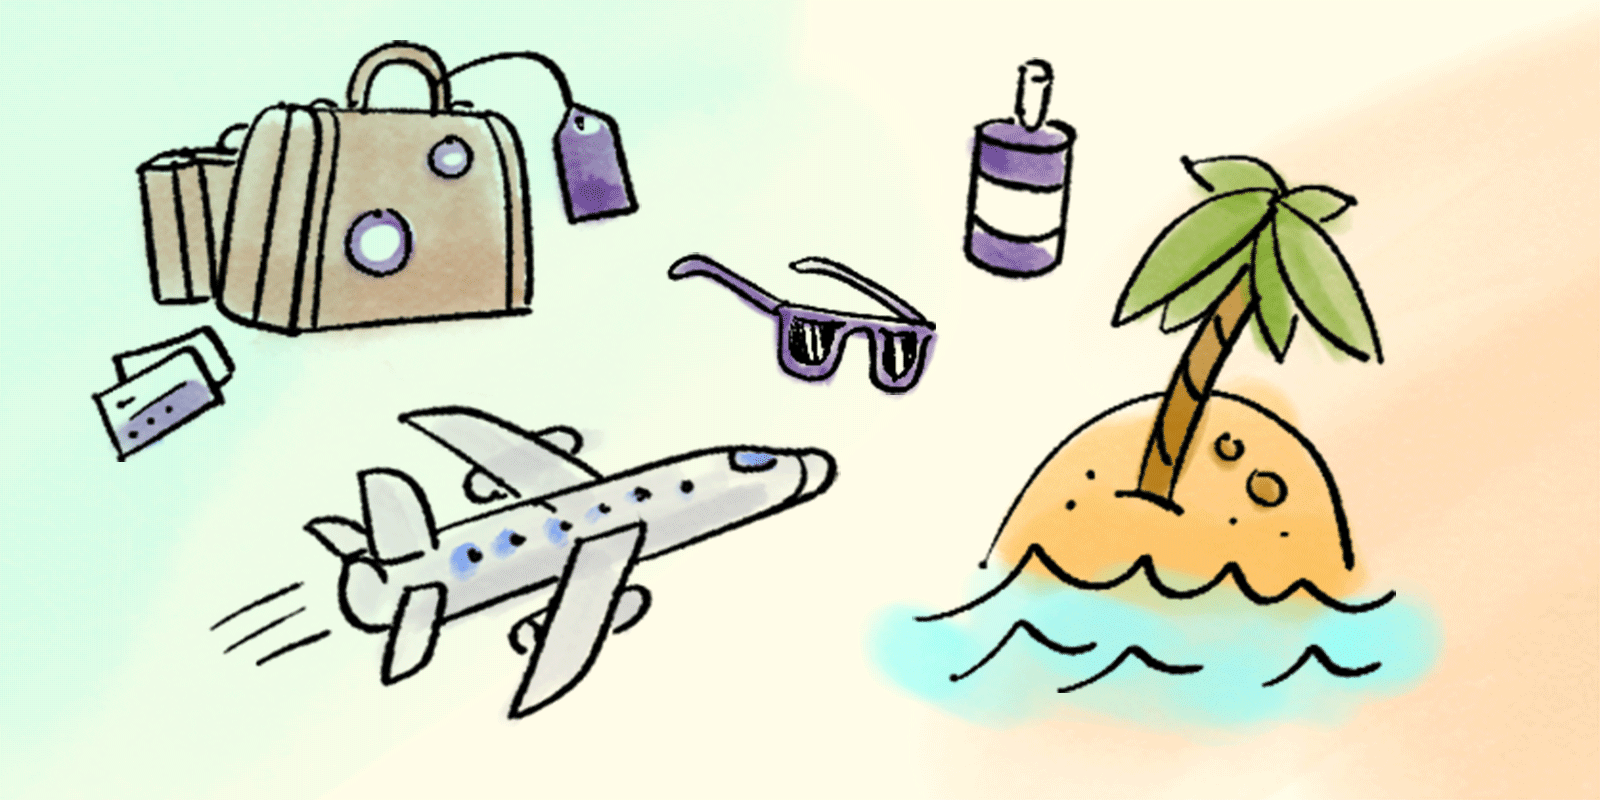 Everything you need for your next trip